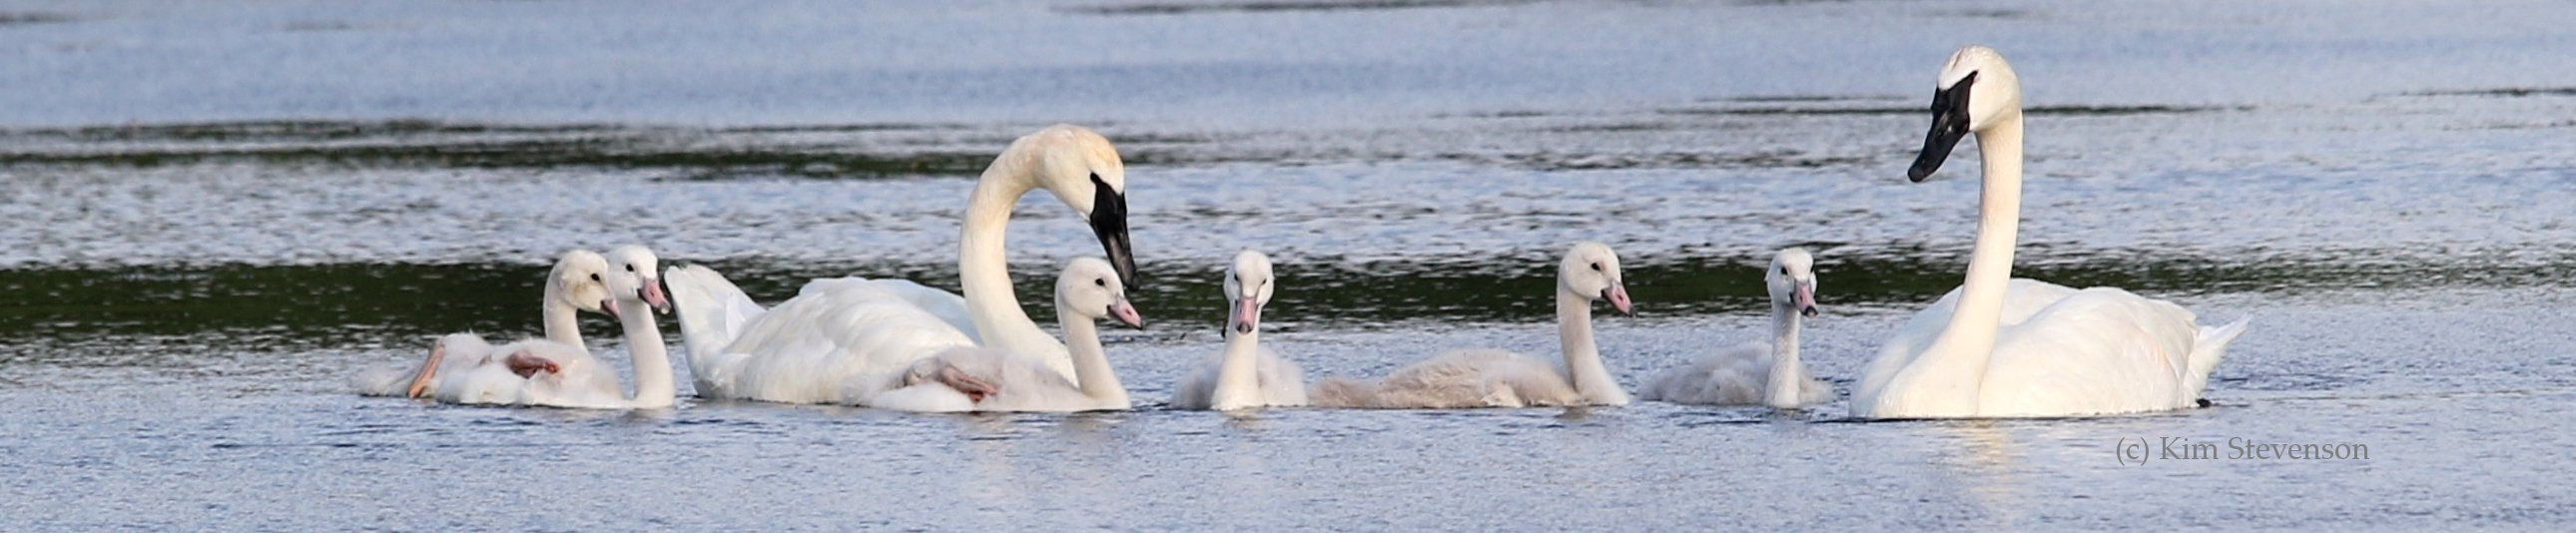 Your gifts of stock will be used to help swan conservation across North America